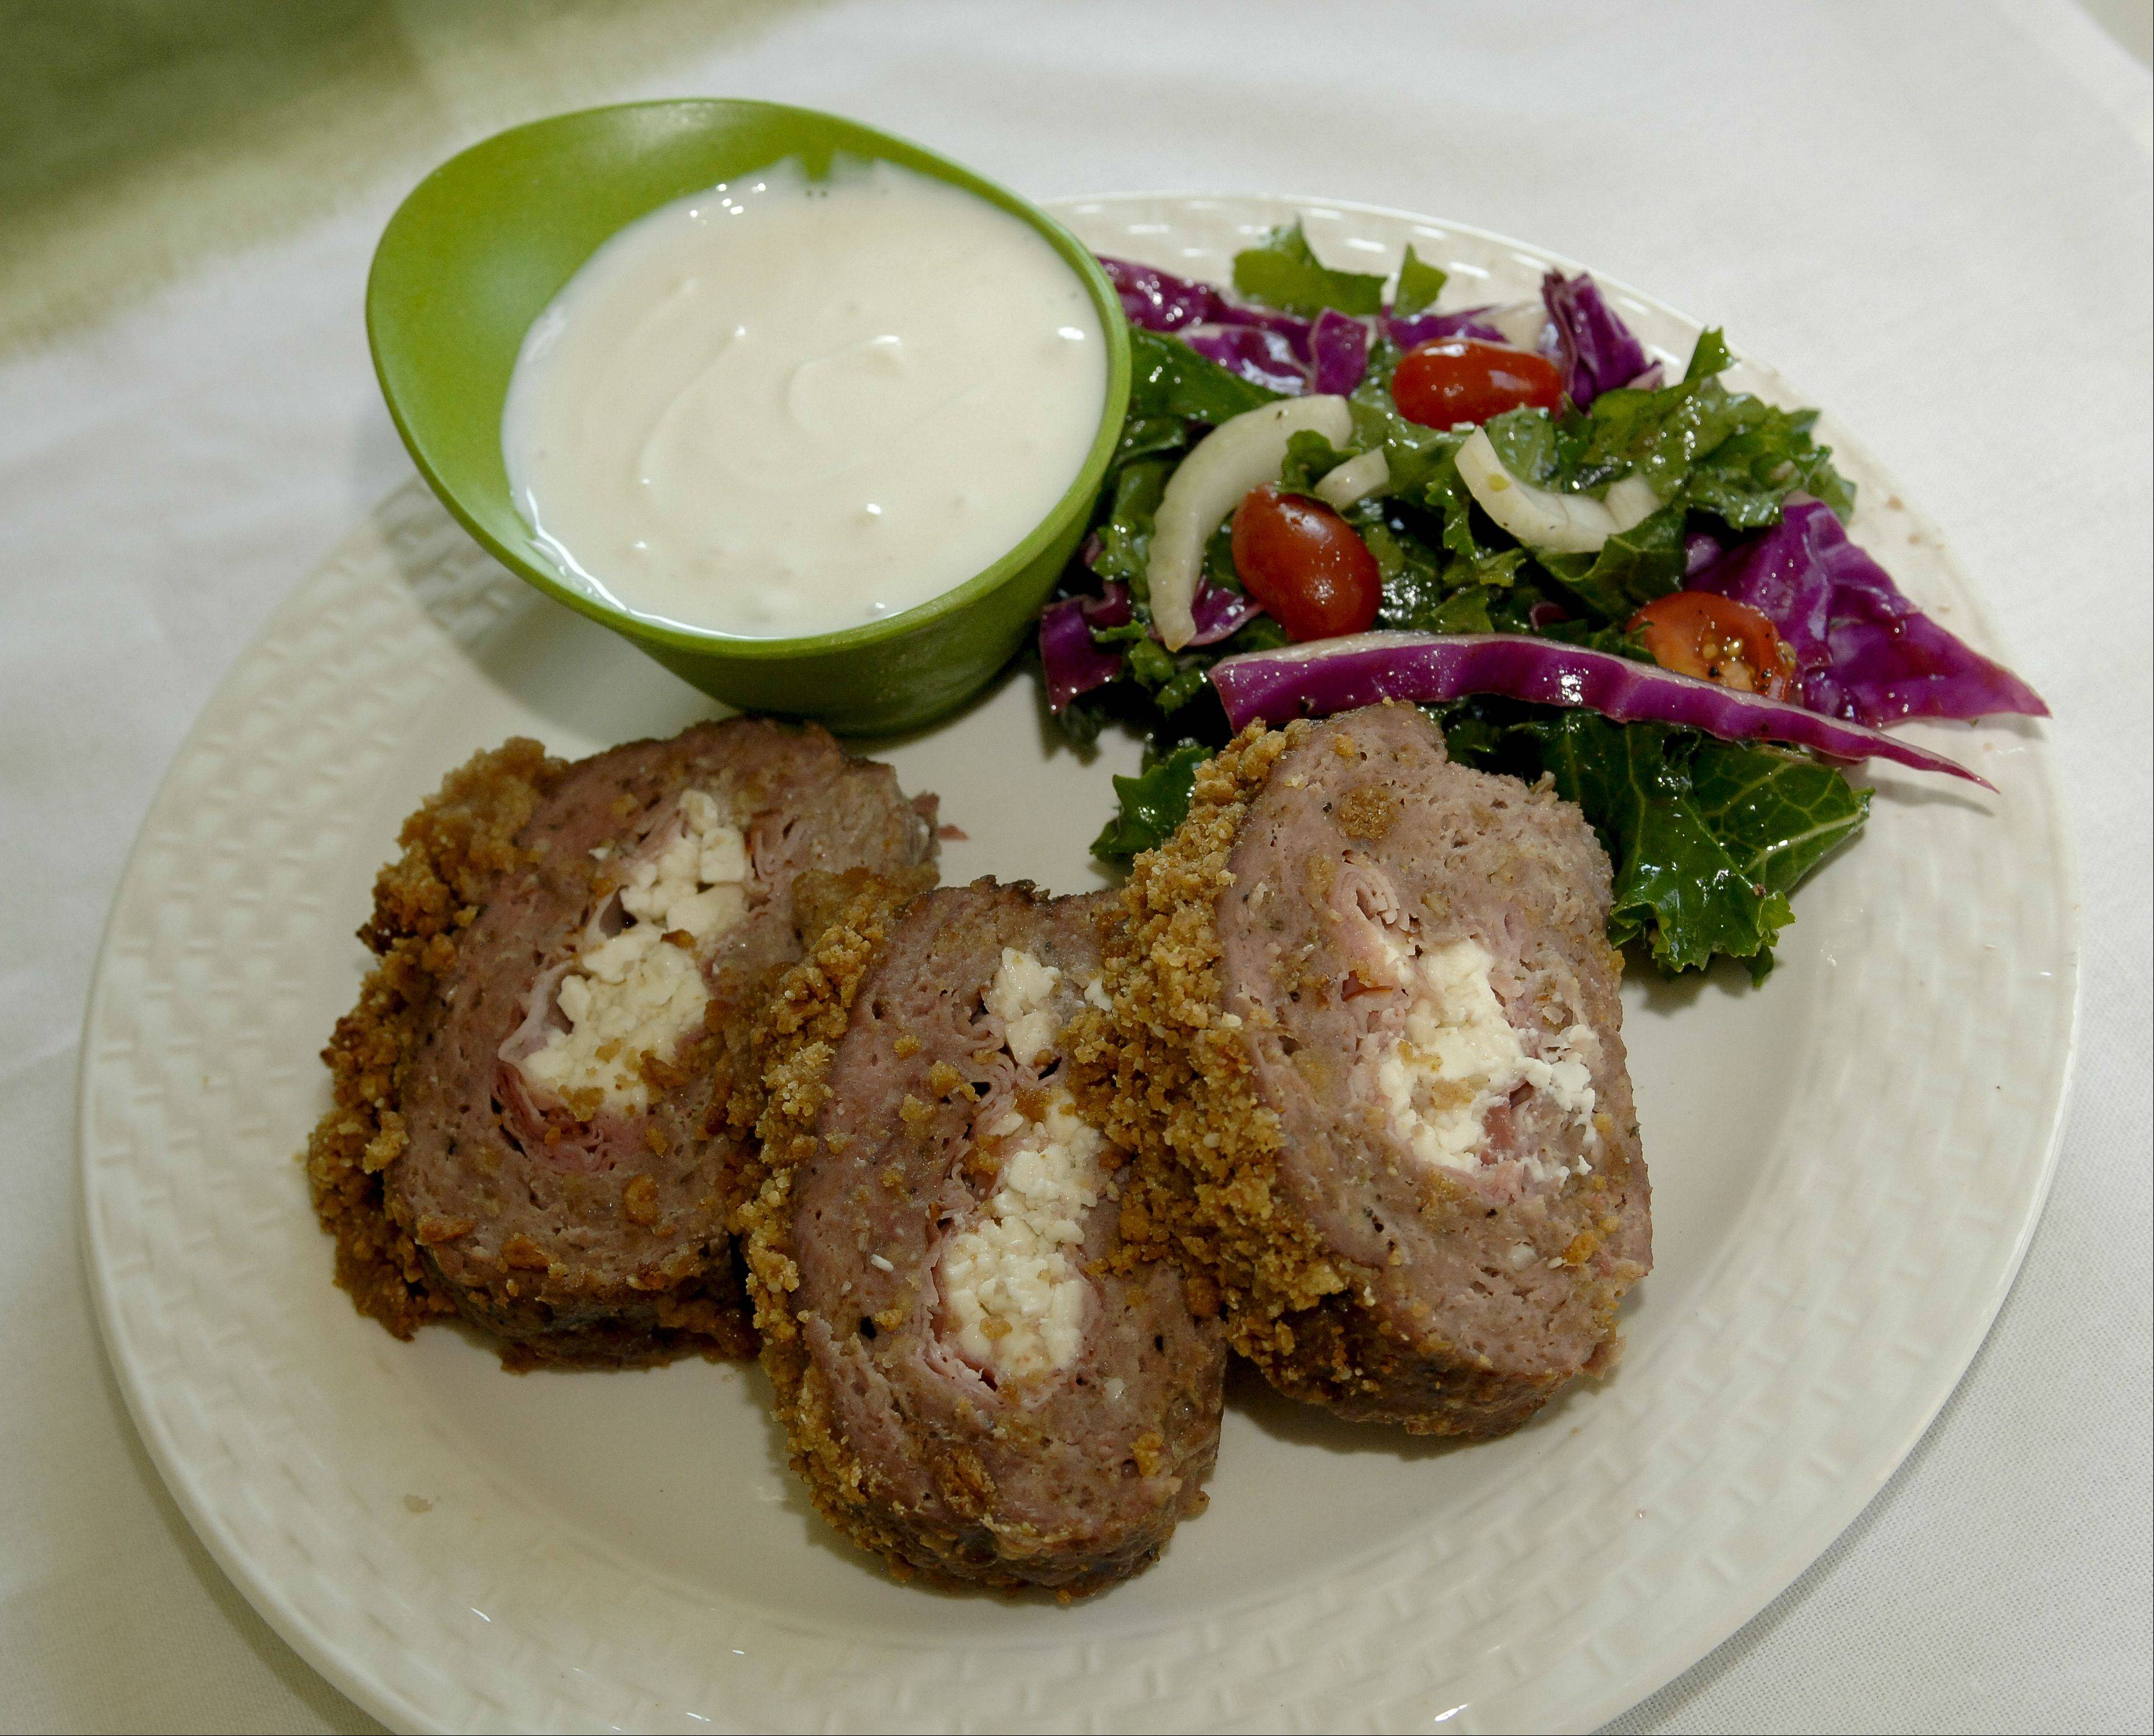 Judy Monaco's stuffed lamb loaf and red cabbage salad moved her into Round 2.